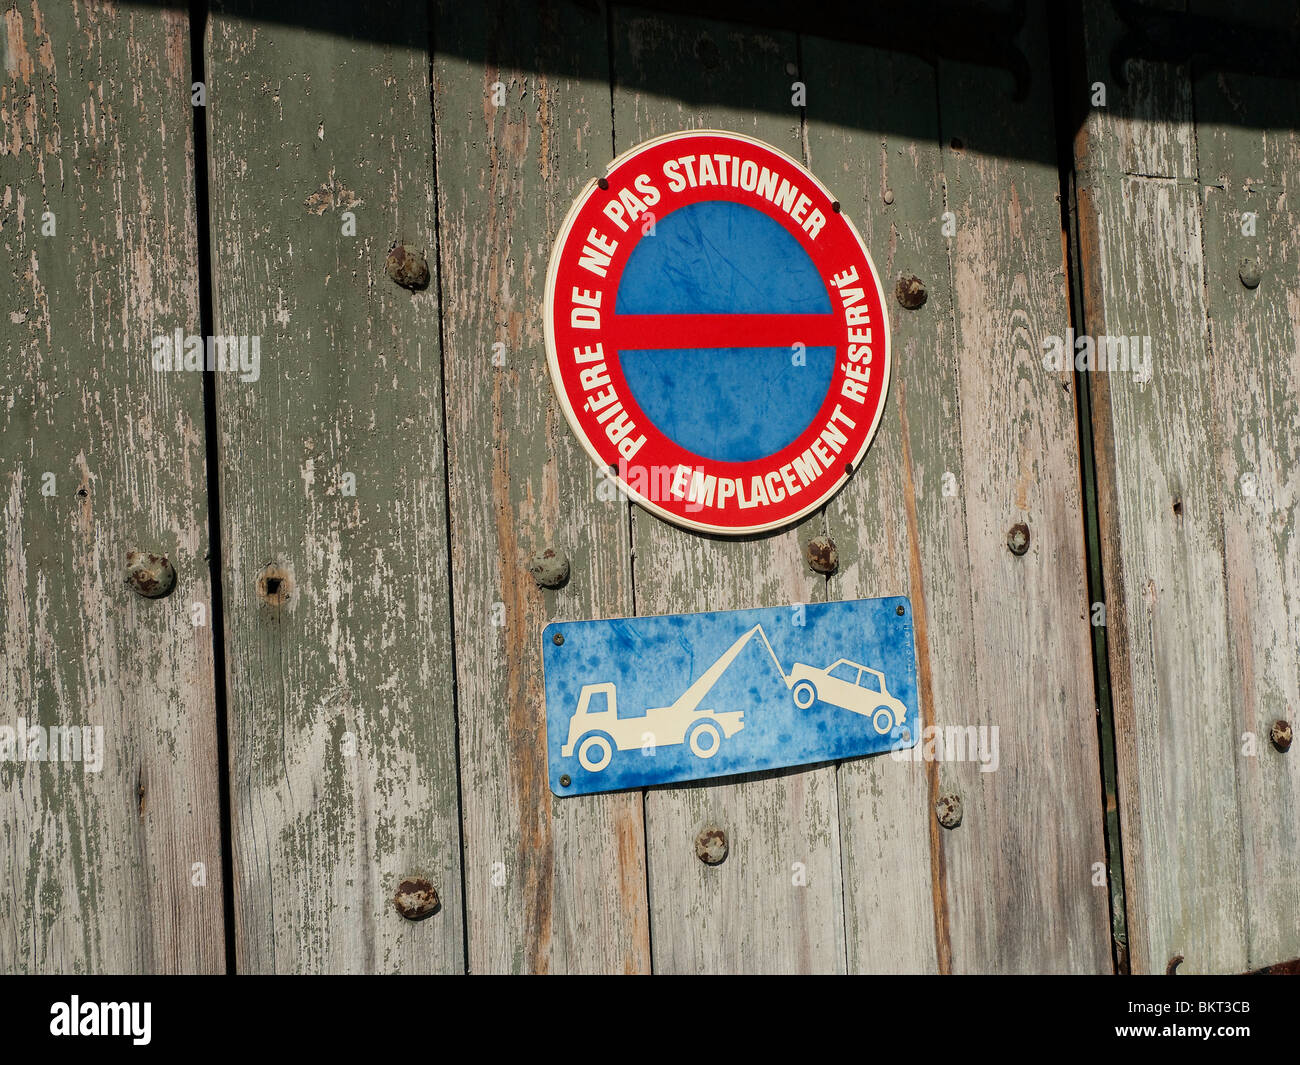 No Parking sign and Tow-away sign on old wood door. - Stock Image